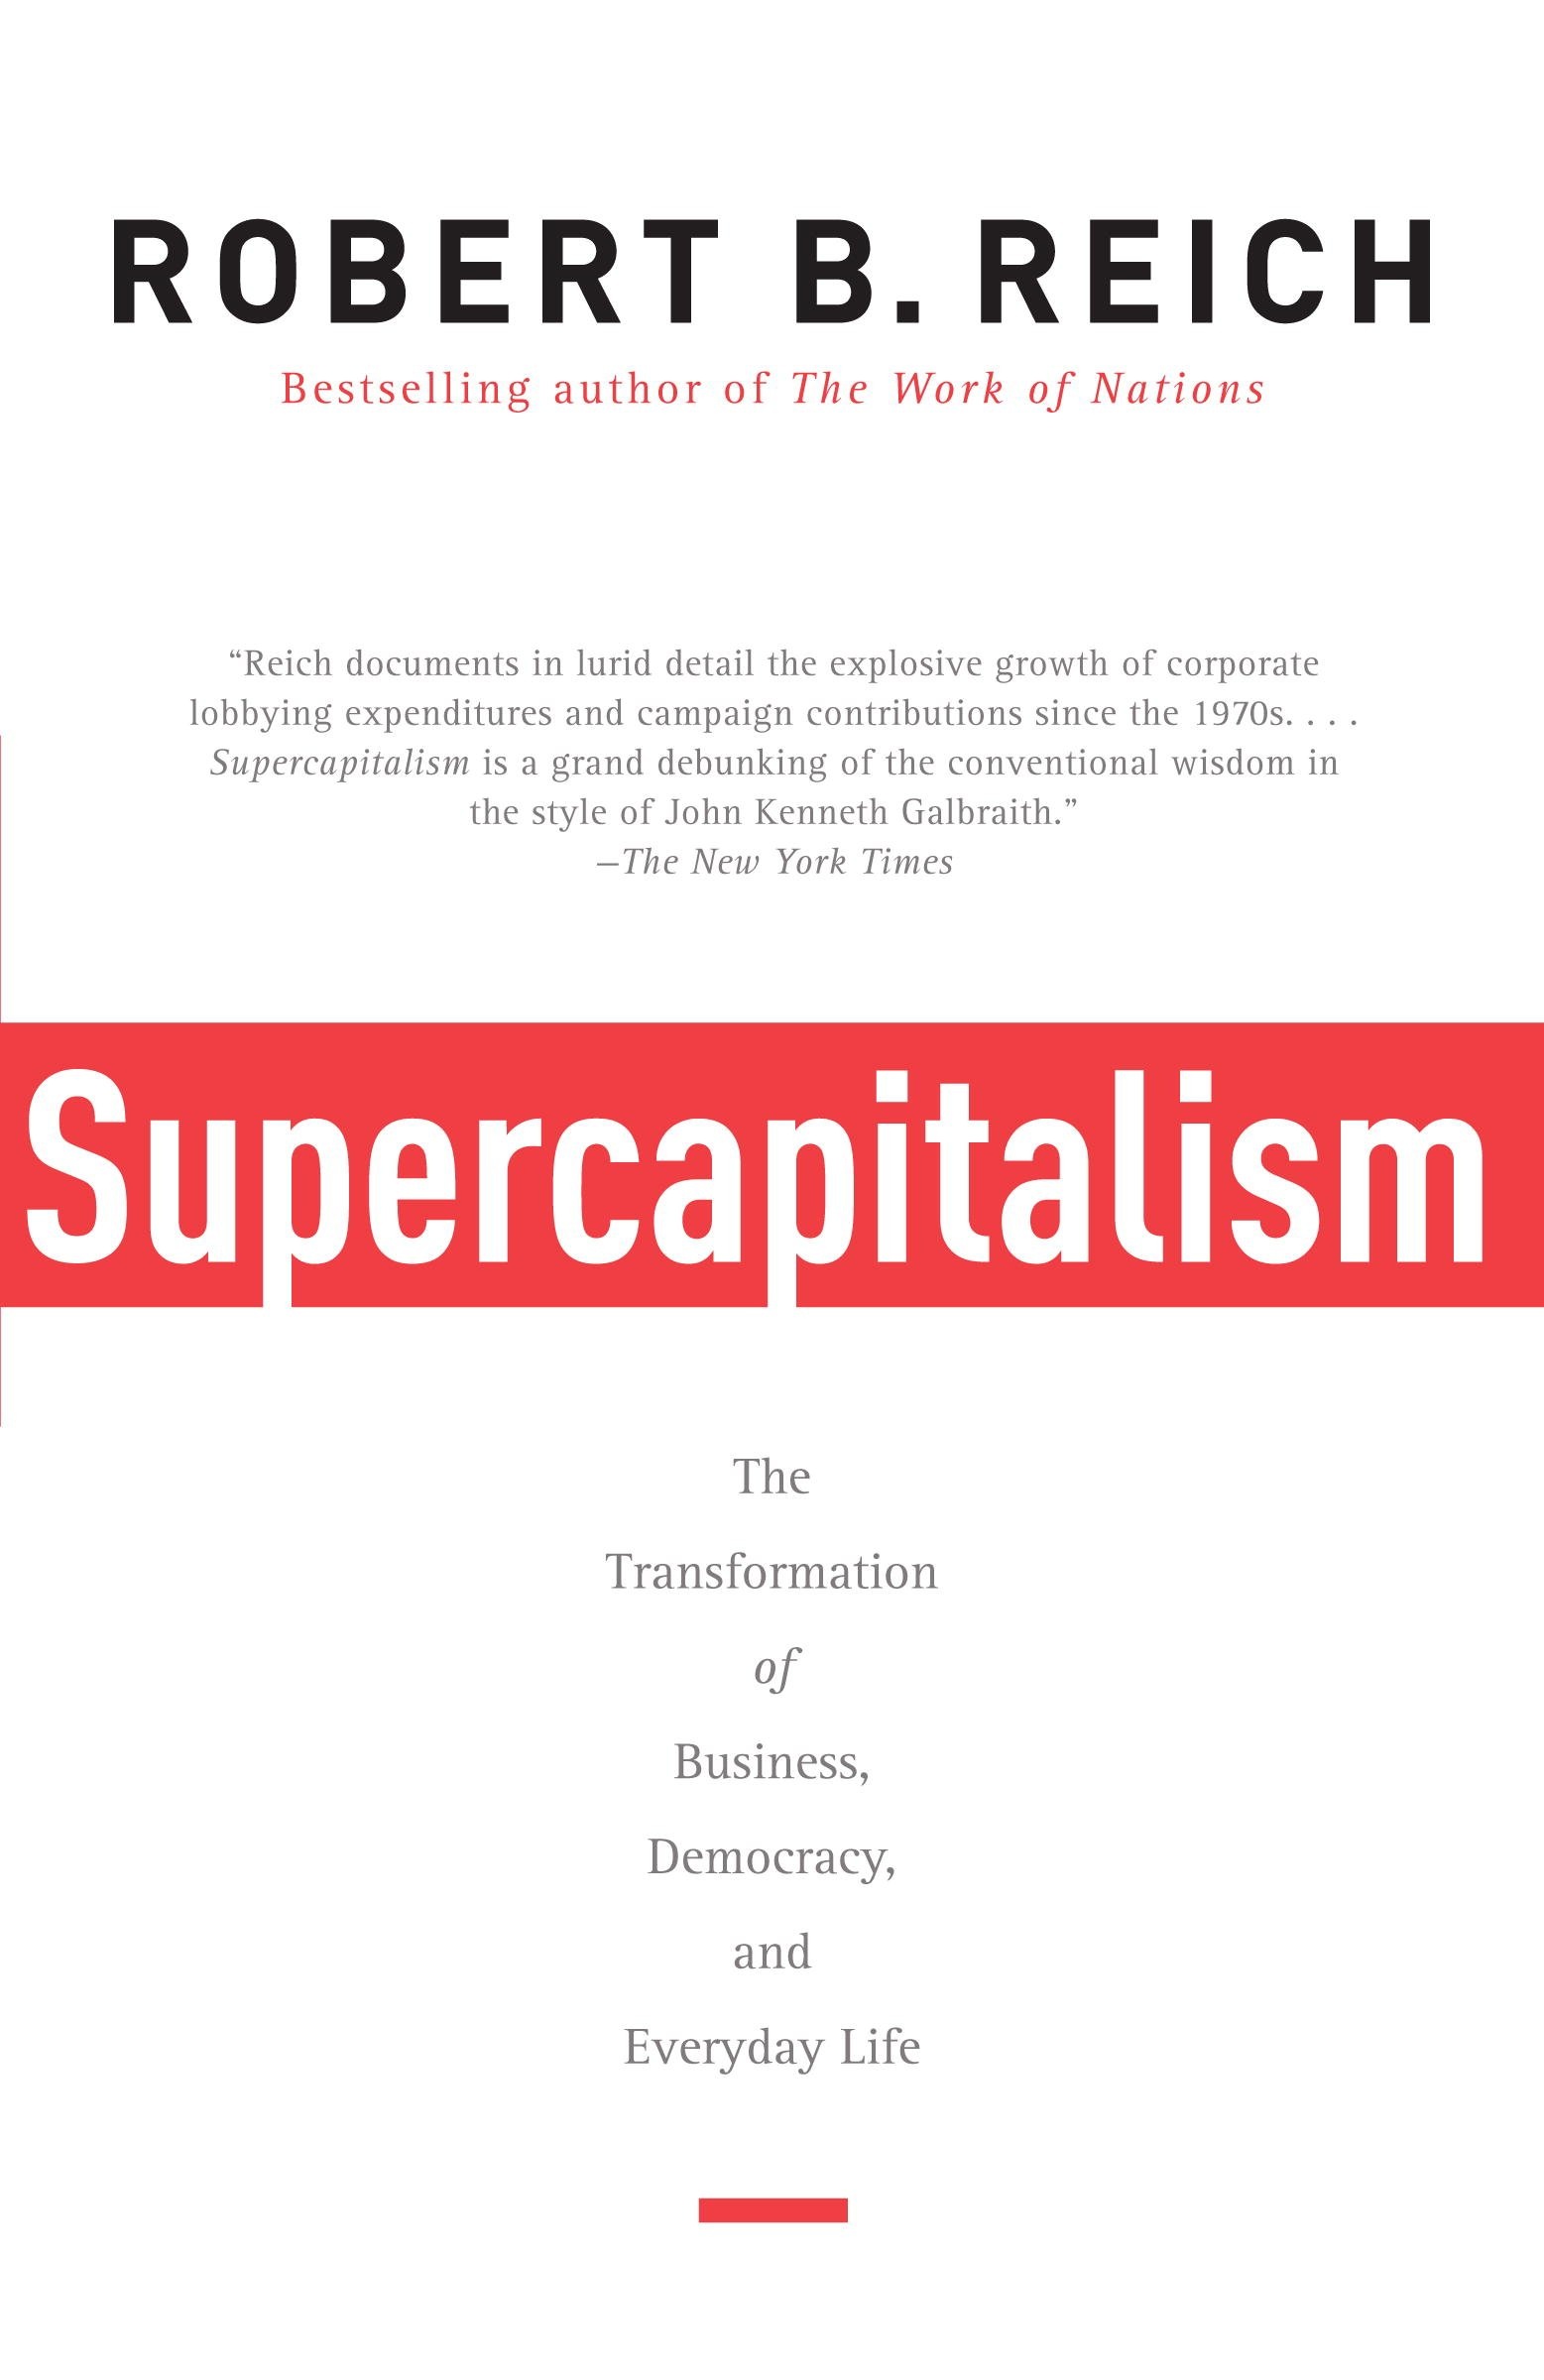 Supercapitalism: The Transformation of Business, Democracy and Everyday Life